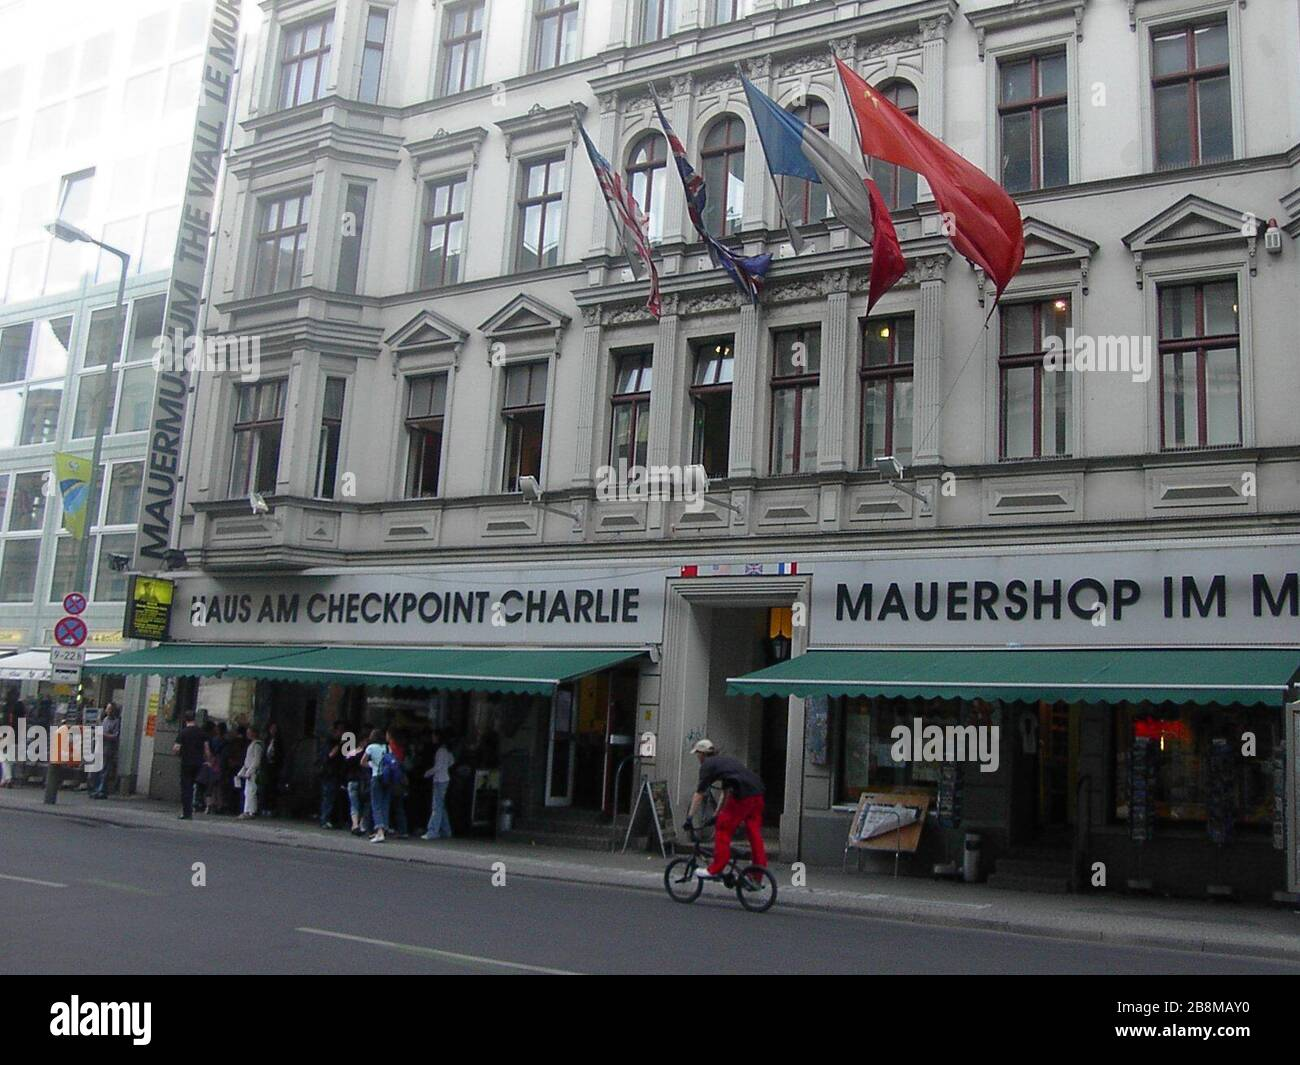 The Original Checkpoint Charlie High Resolution Stock Photography And Images Alamy